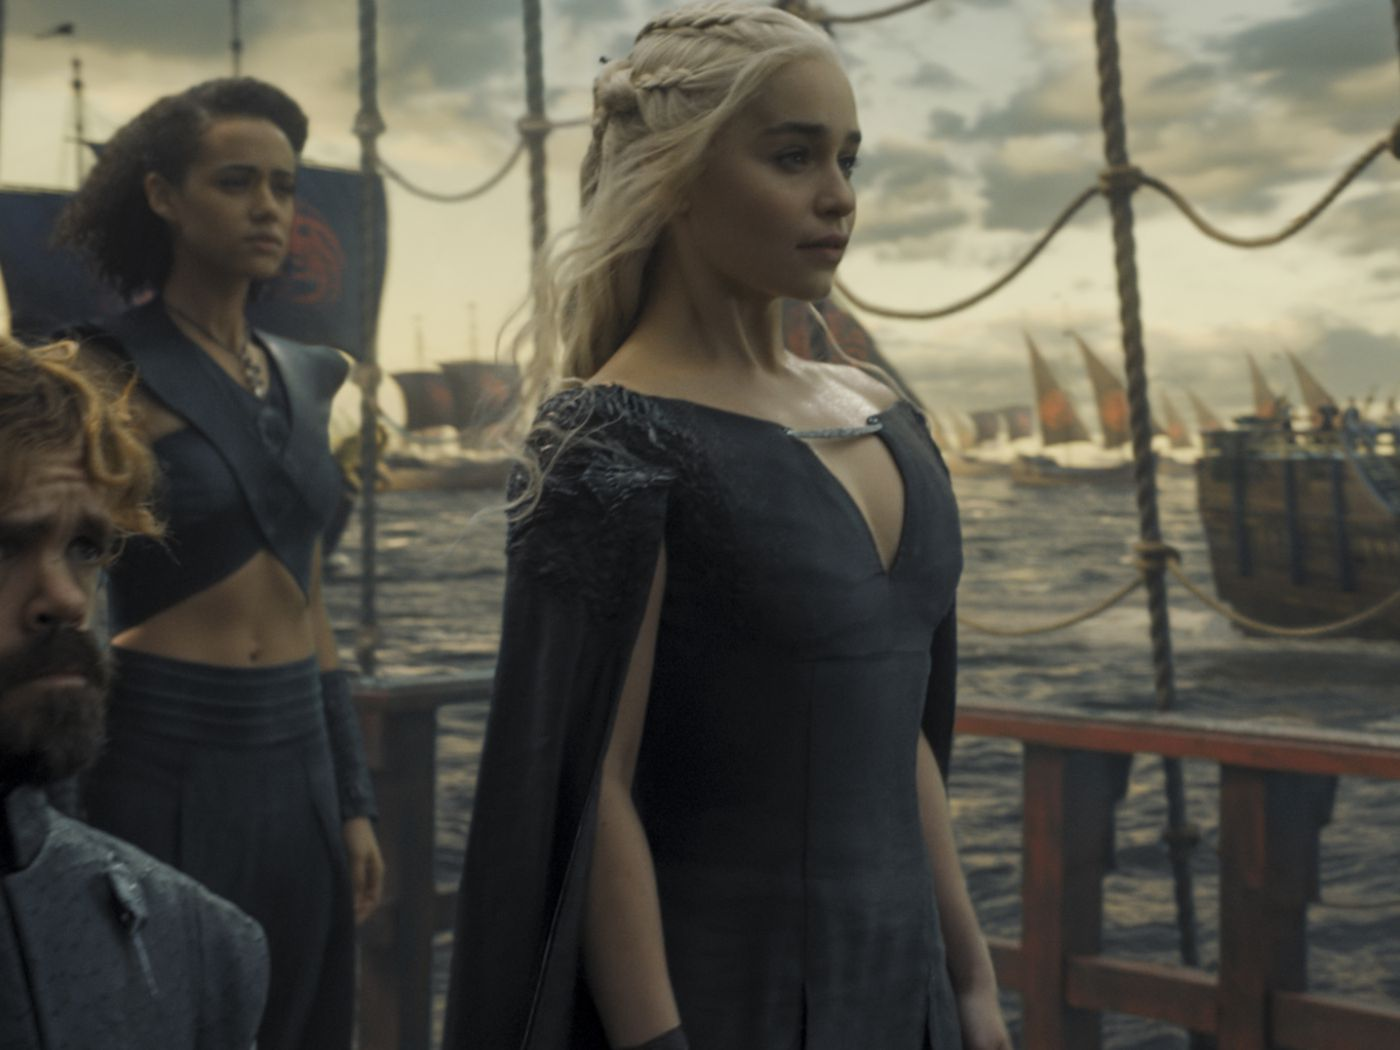 Game Of Thrones Season 6 Was Good Tv That Shows Why The Series